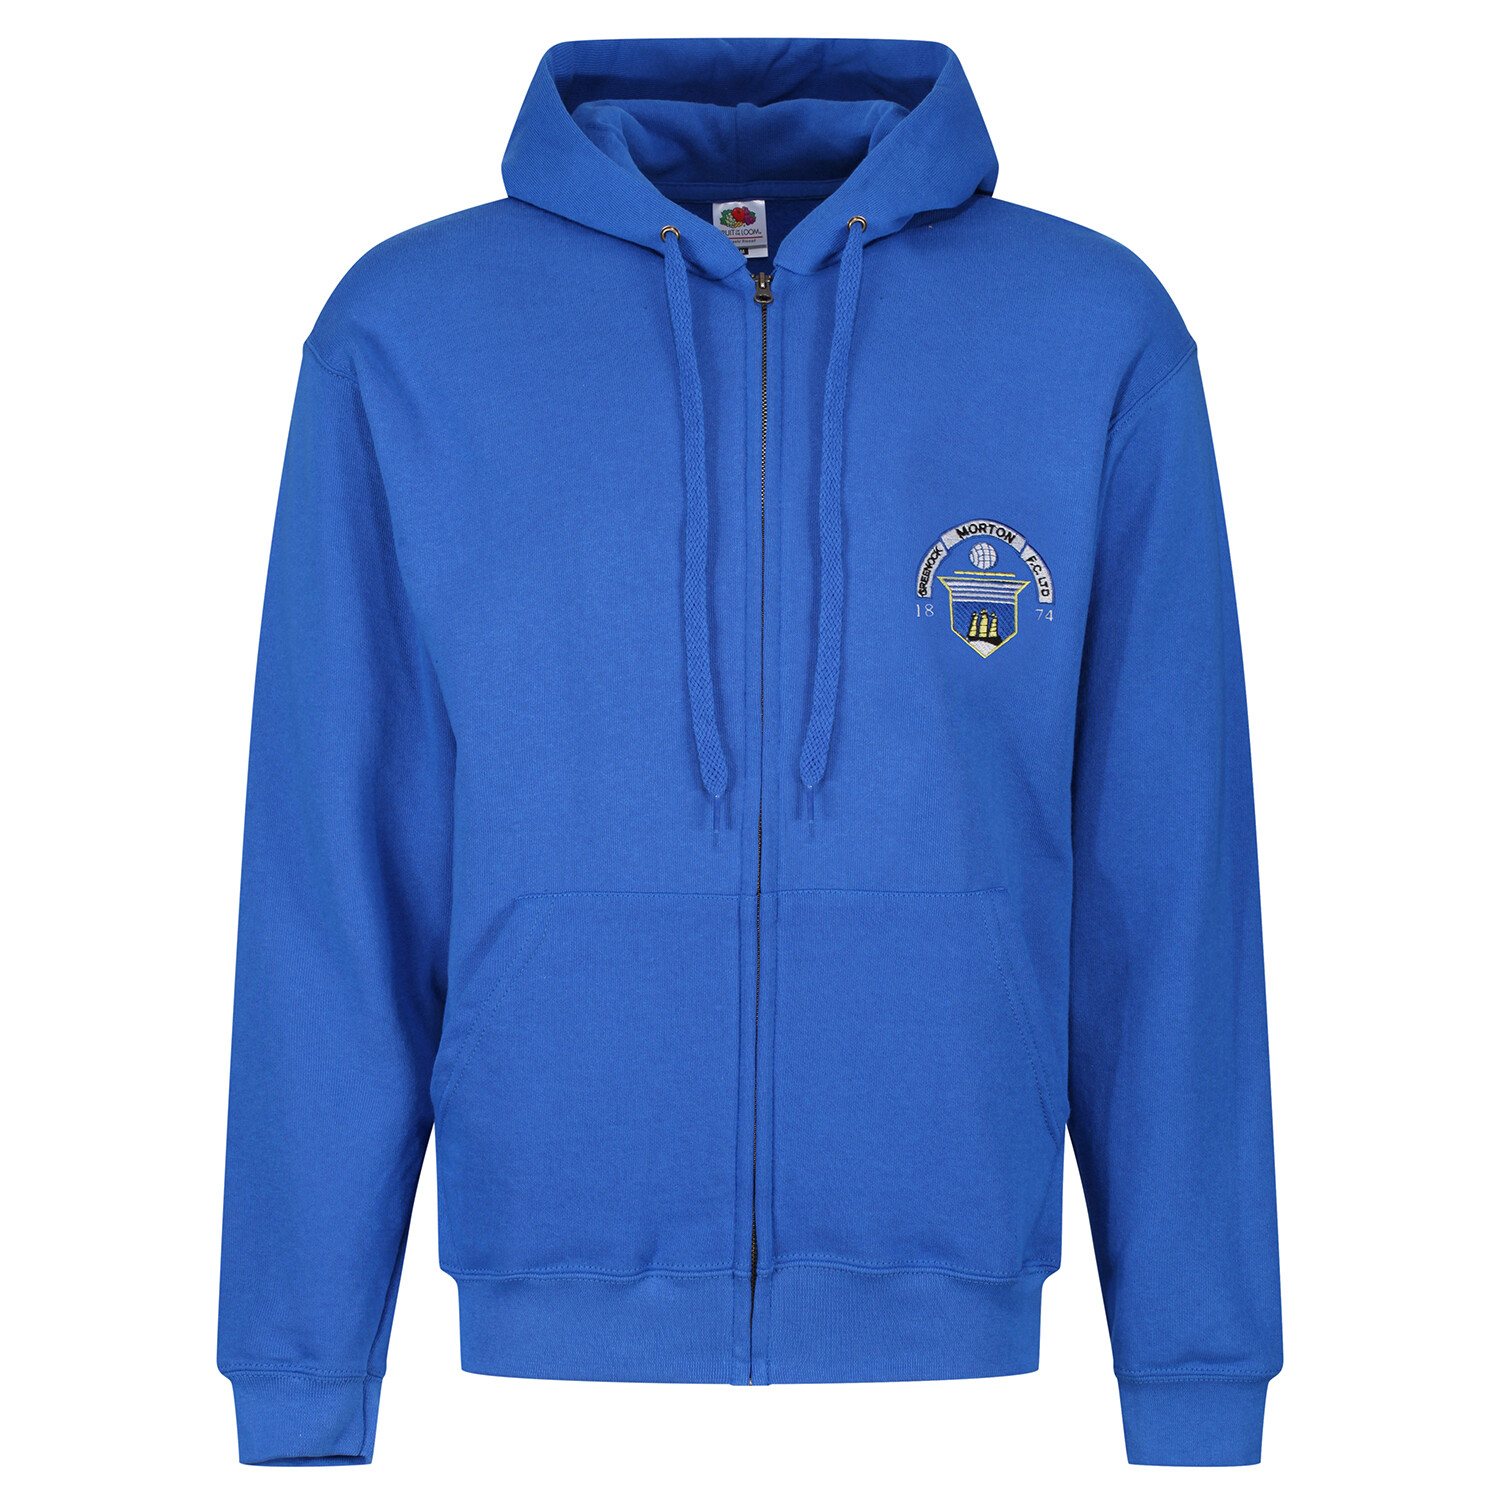 Morton 'Zipper' Hoody (In Royal)